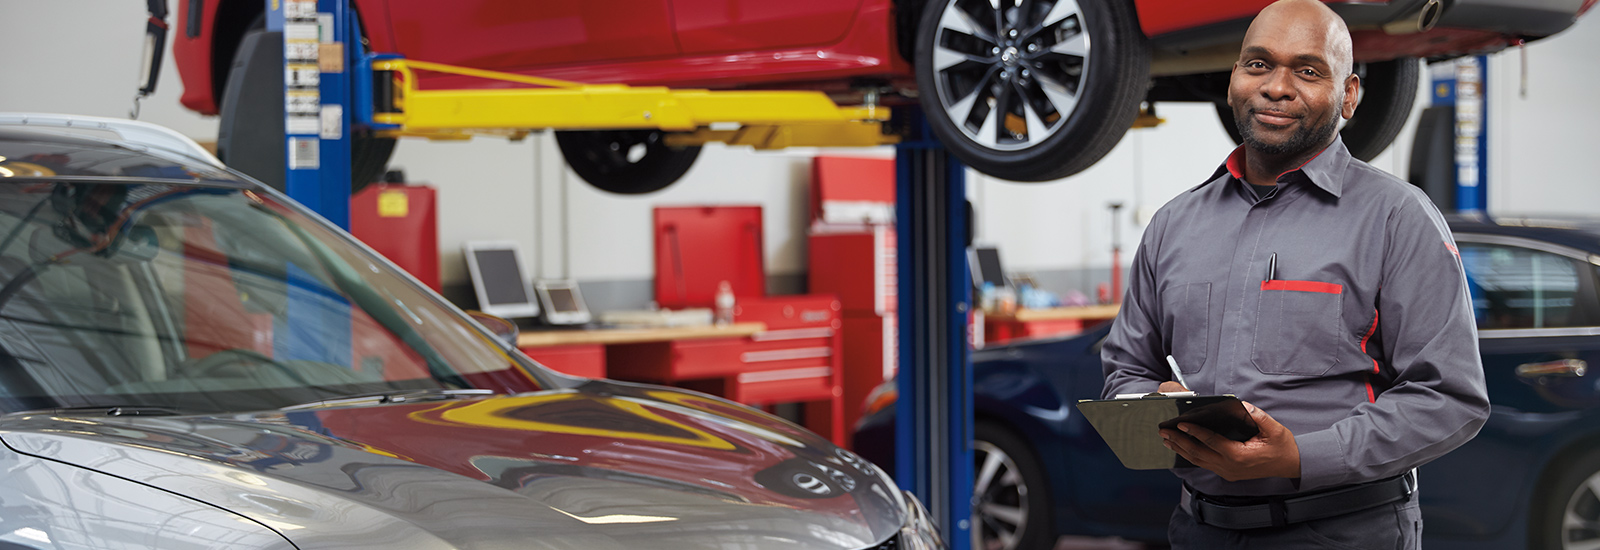 Nissan Oil Change | Preston Nissan, Nissan Dealer Near Dover DE